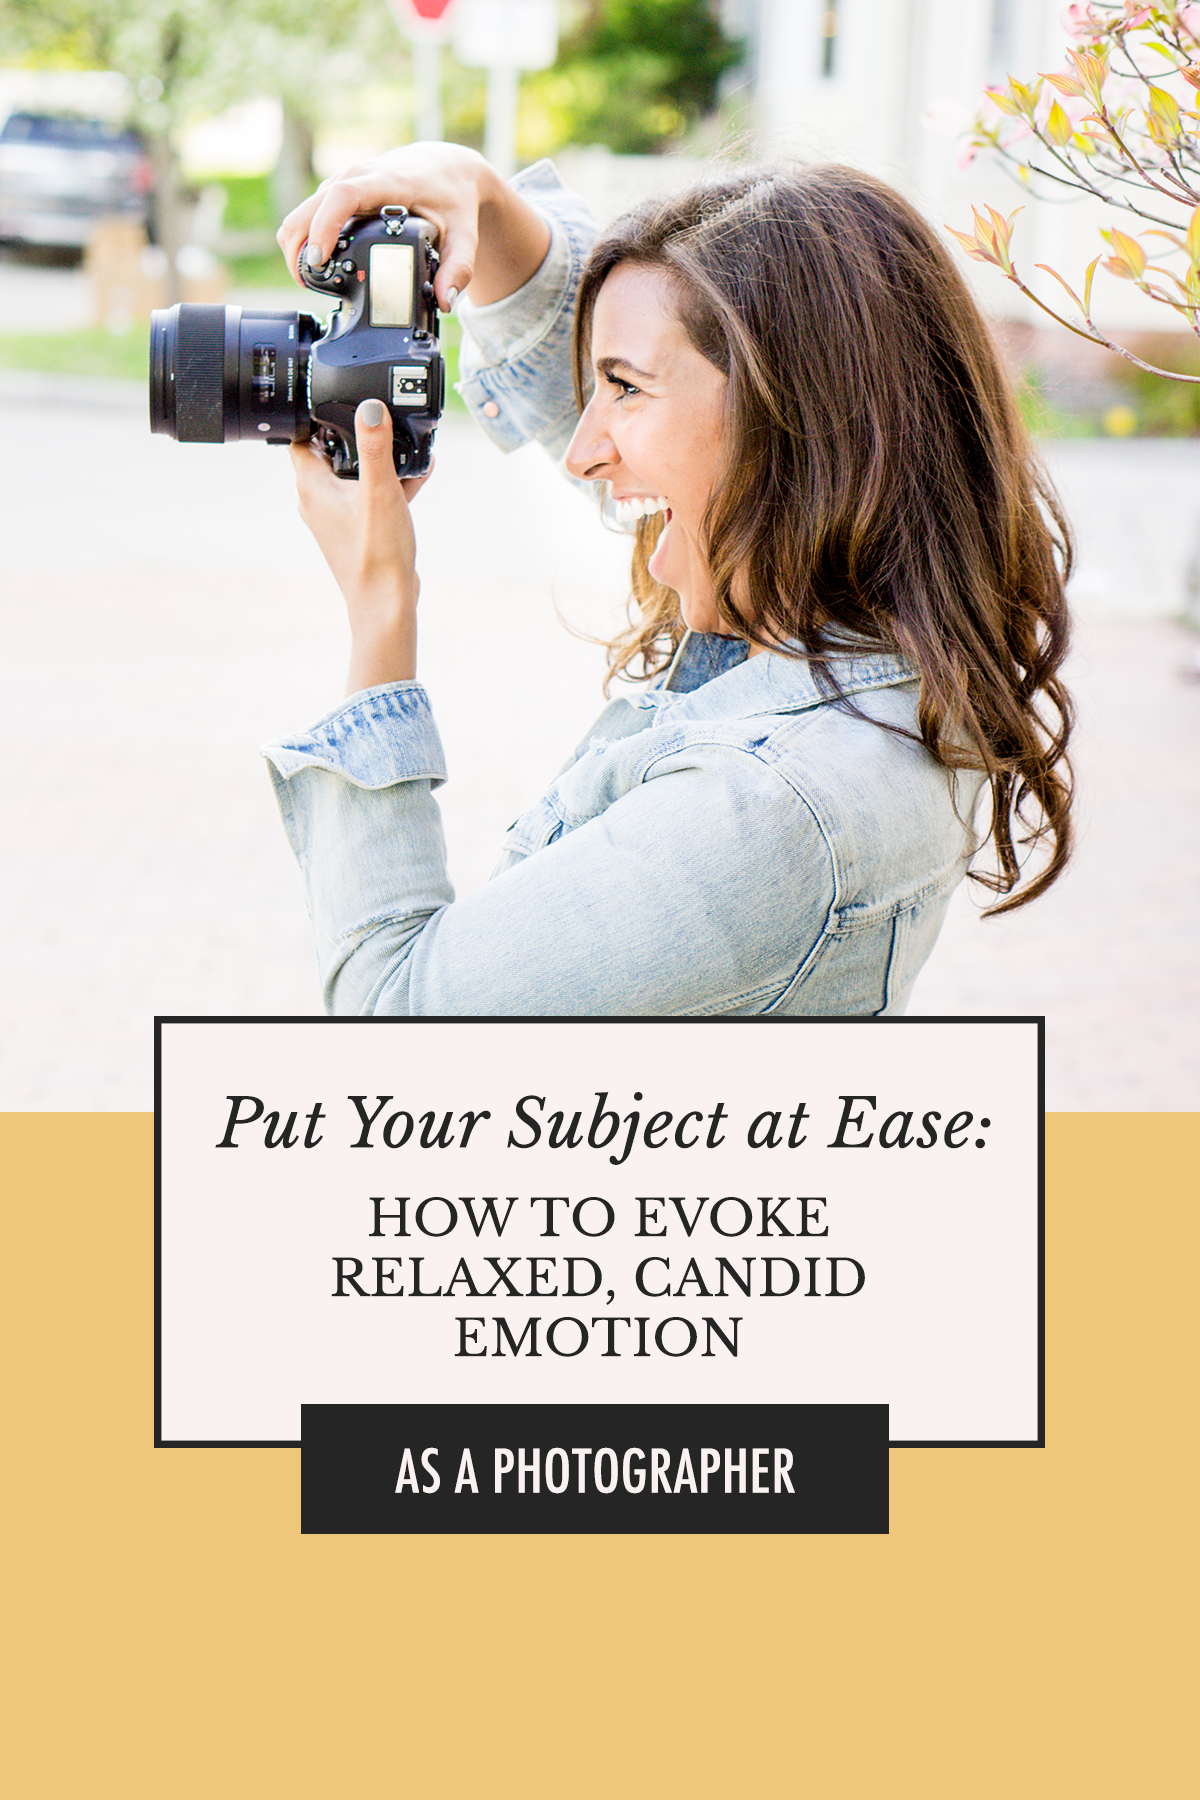 Resources for Photographers by Alexis The Greek | Become a Better Photographer! How to Get Your Subject to Relax, Open Up, and Show Real Candid Emotion